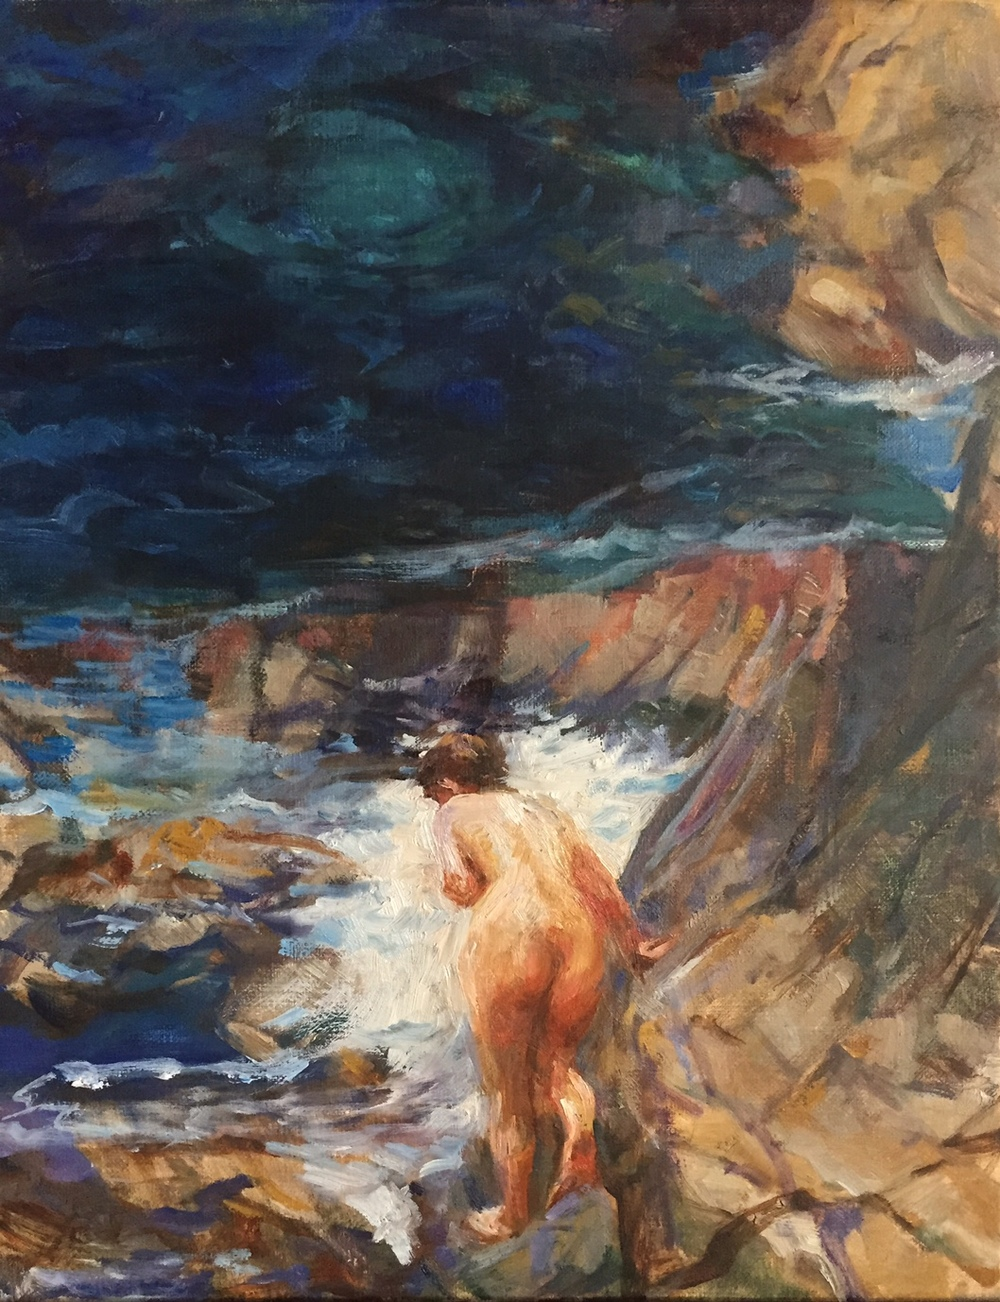 Bather at the Cove, Big Sur